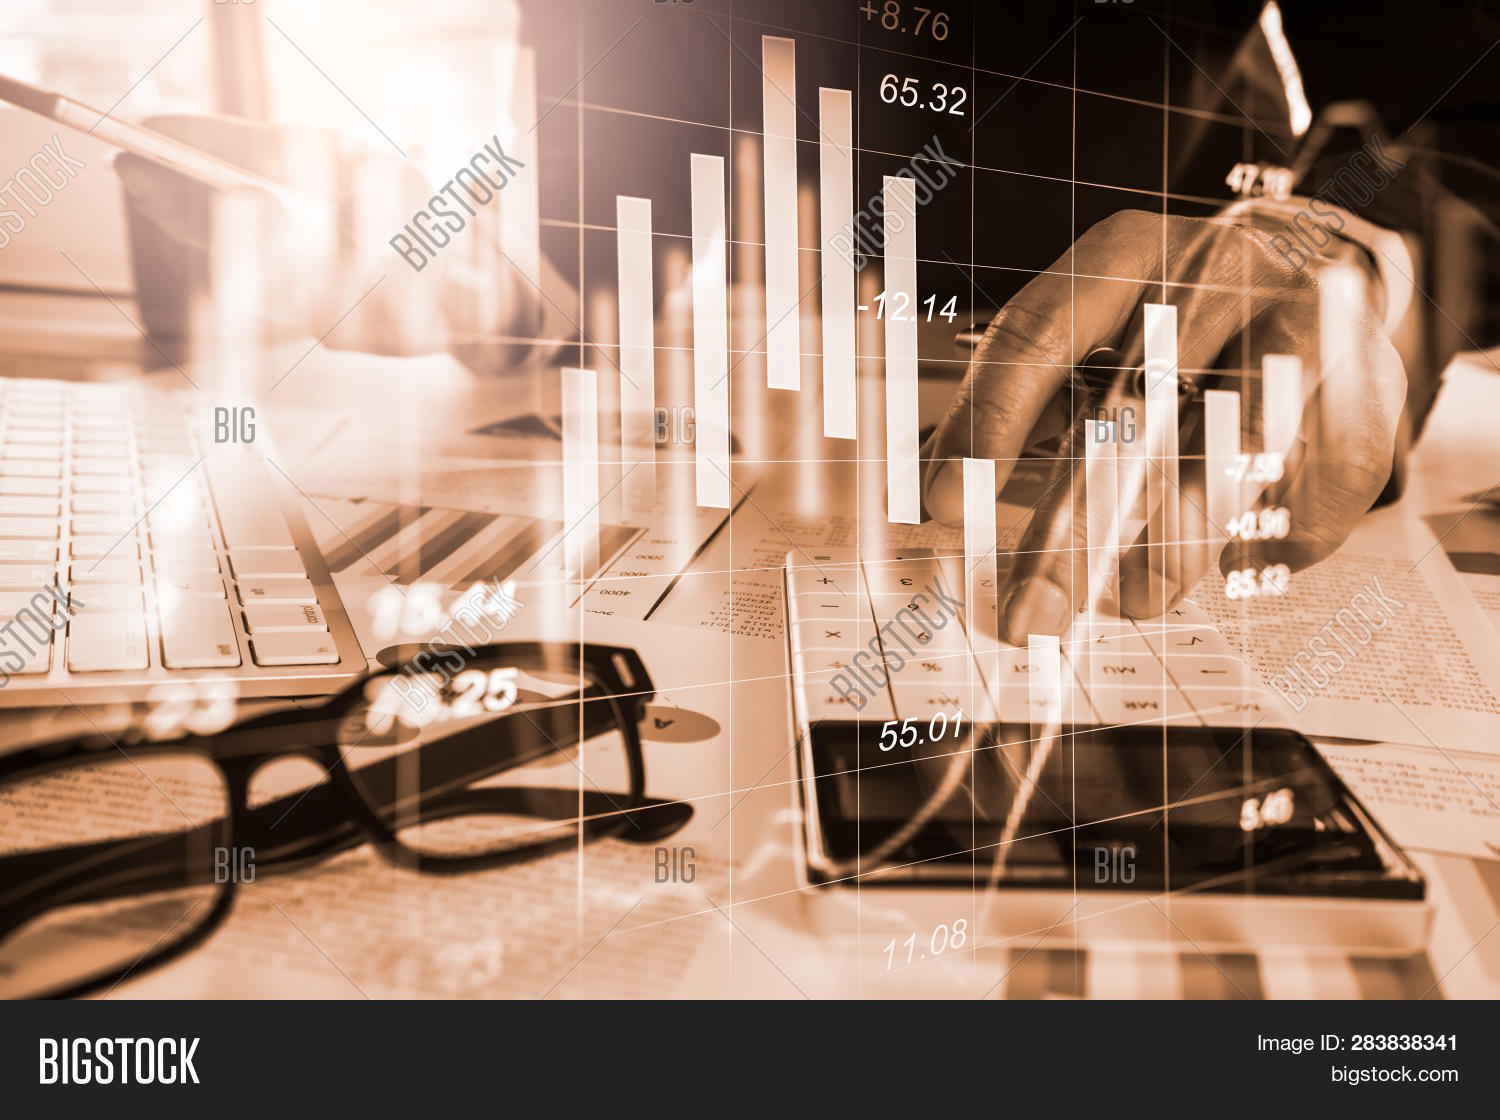 abstract,accounting,analysis,asset,background,bank,broker,business,businessman,chart,coin,commercial,concept,cost,currency,data,digital,earning,economic,economy,exchange,finance,financial,financier,forex,funds,global,graph,growth,index,indicator,information,investment,laptop,management,market,marketing,money,notebook,profit,rate,smartphone,statistic,stock,street,technology,trade,trends,voorraad,wall